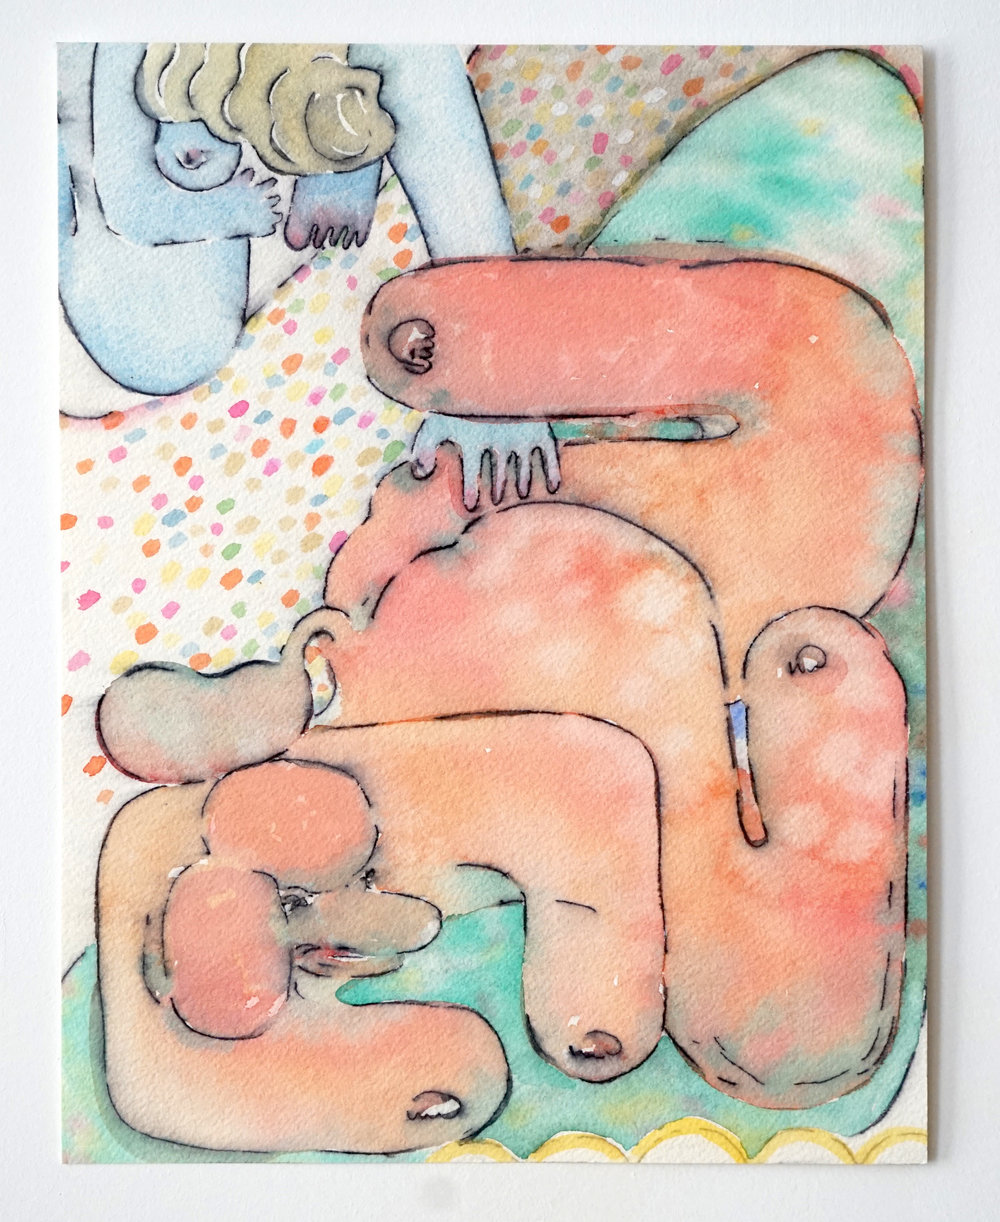 "Sophie Larrimore, ""Untitled"", 2017, Marker and watercolor on paper, 11 x 8.5 in"